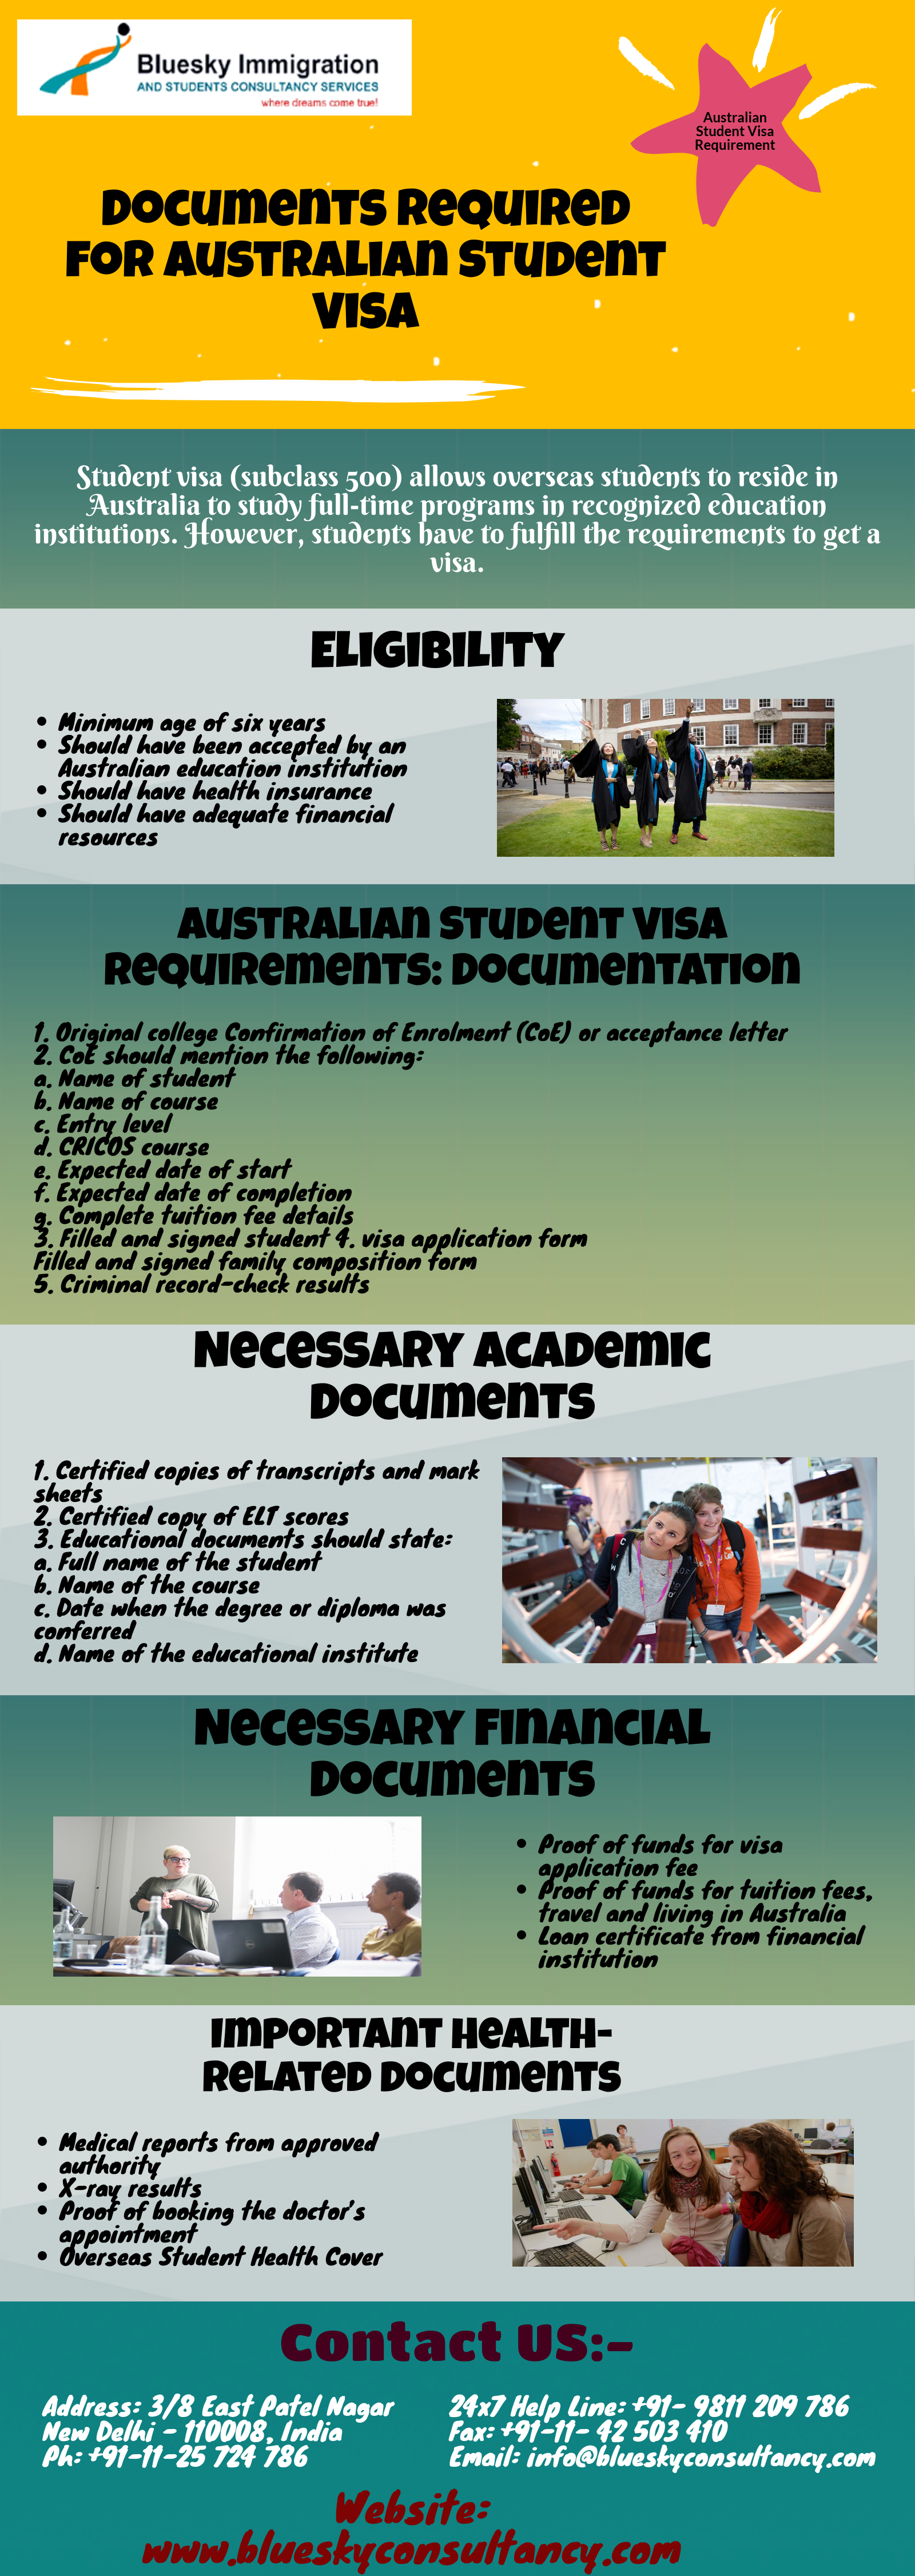 Documents Required For Australian Student Visa